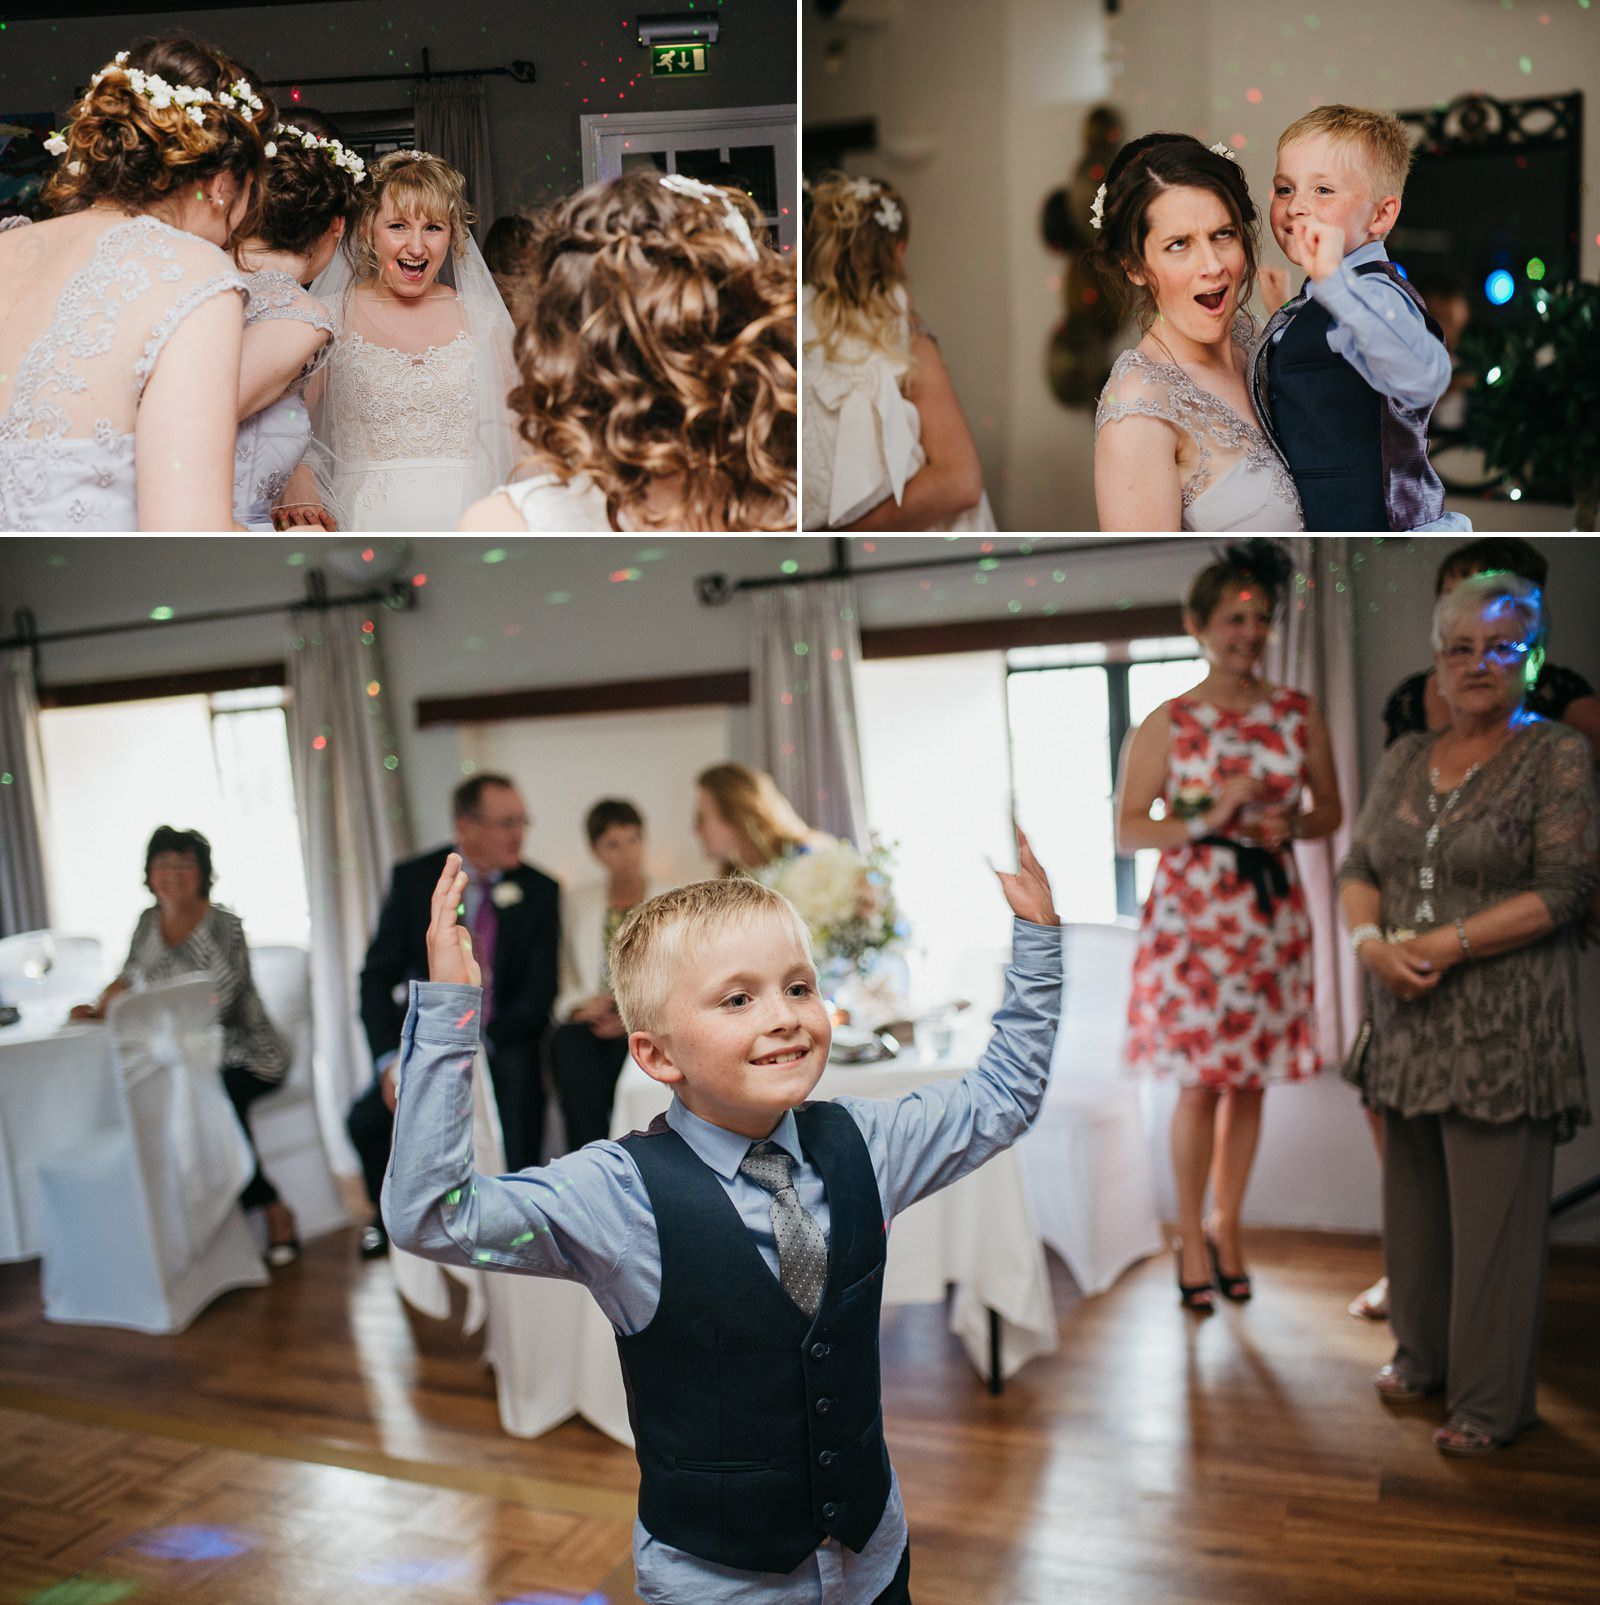 Dancing at relaxed South Wales wedding at The Great House Hotel, Laleston